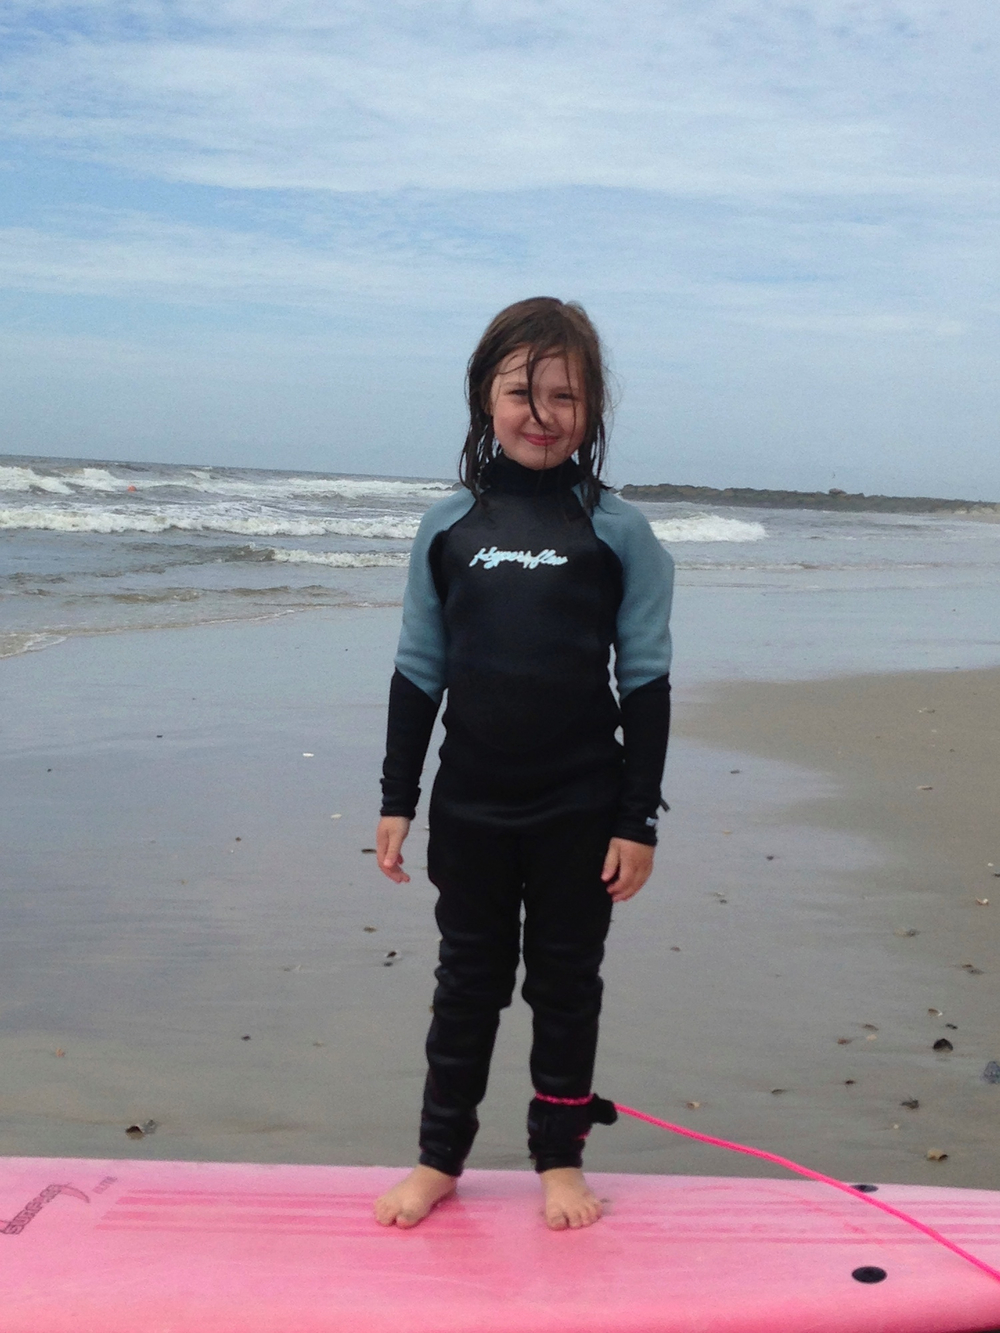 Image of young girl, 2013 Surf2Live, Long Beach, NY Summer Surf Camp.